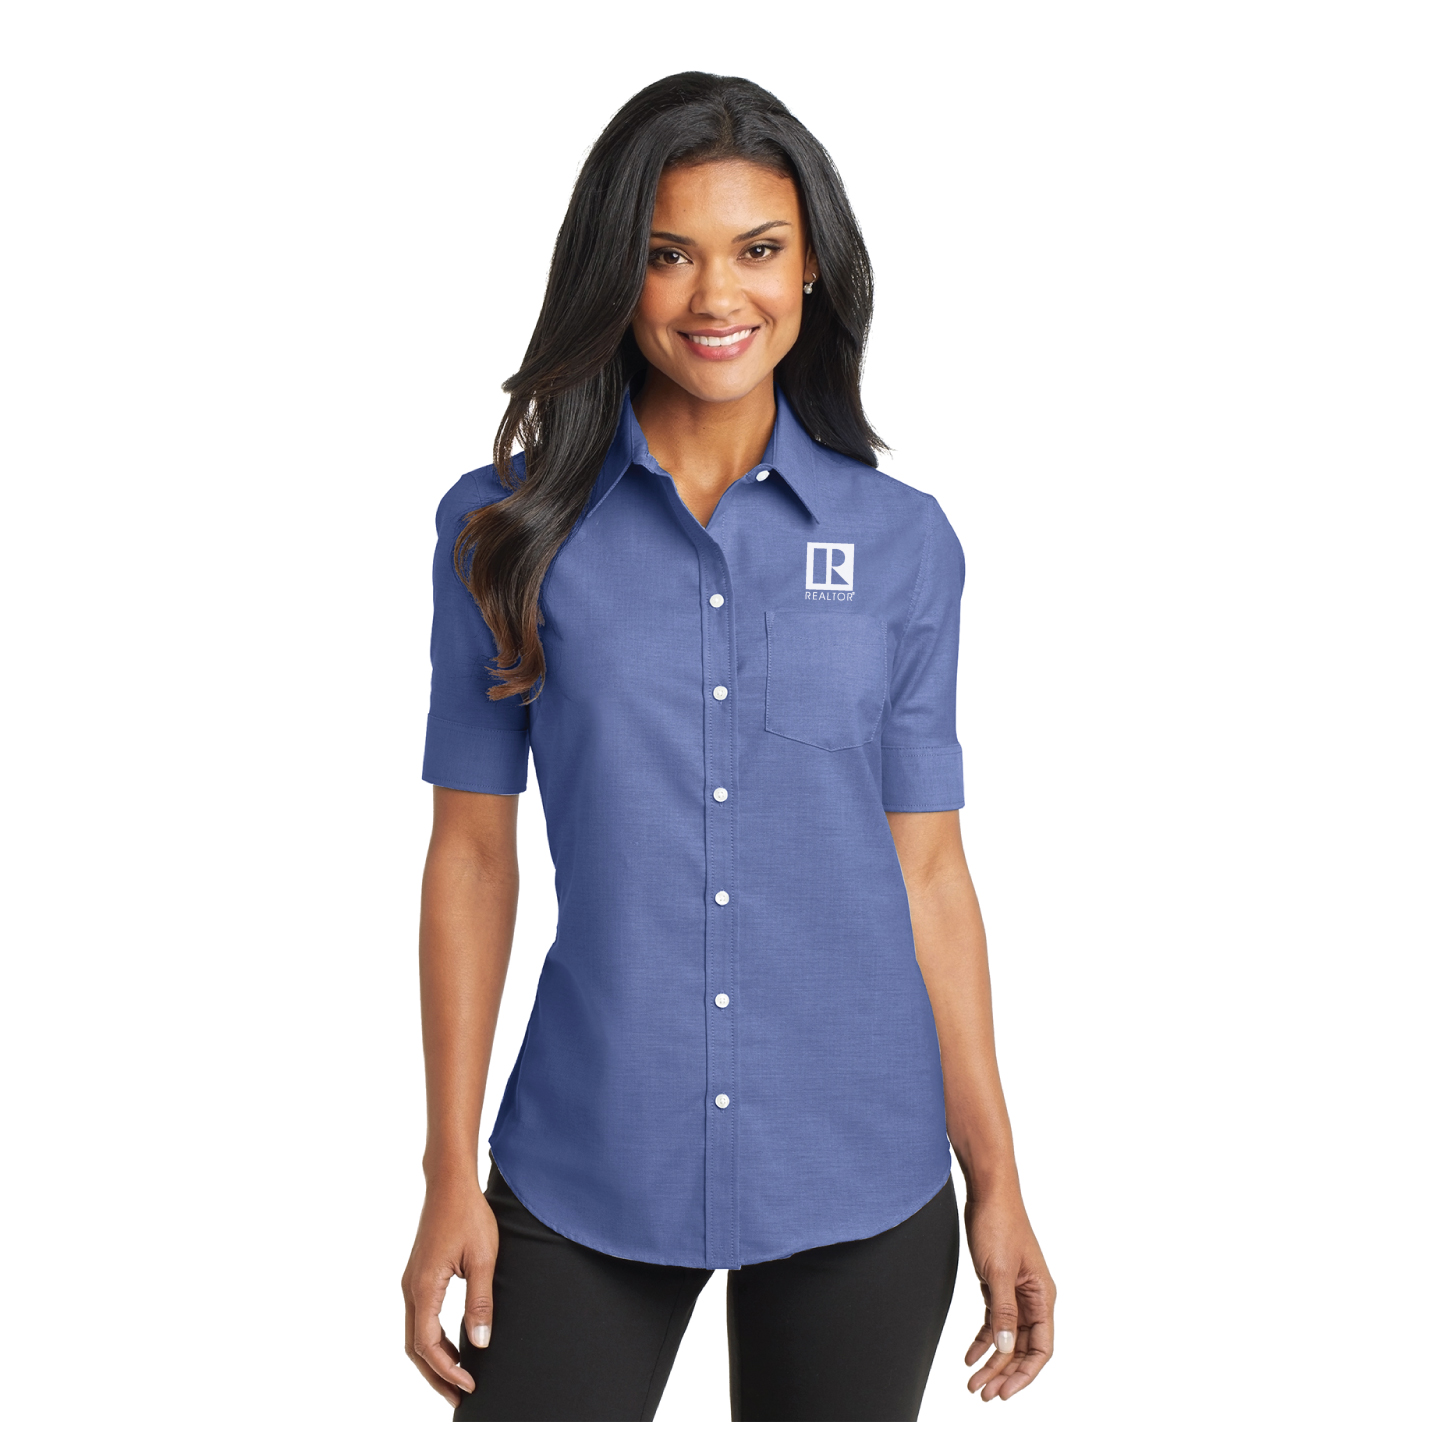 Ladies Short Sleeve Oxford Shirt - RCL4111